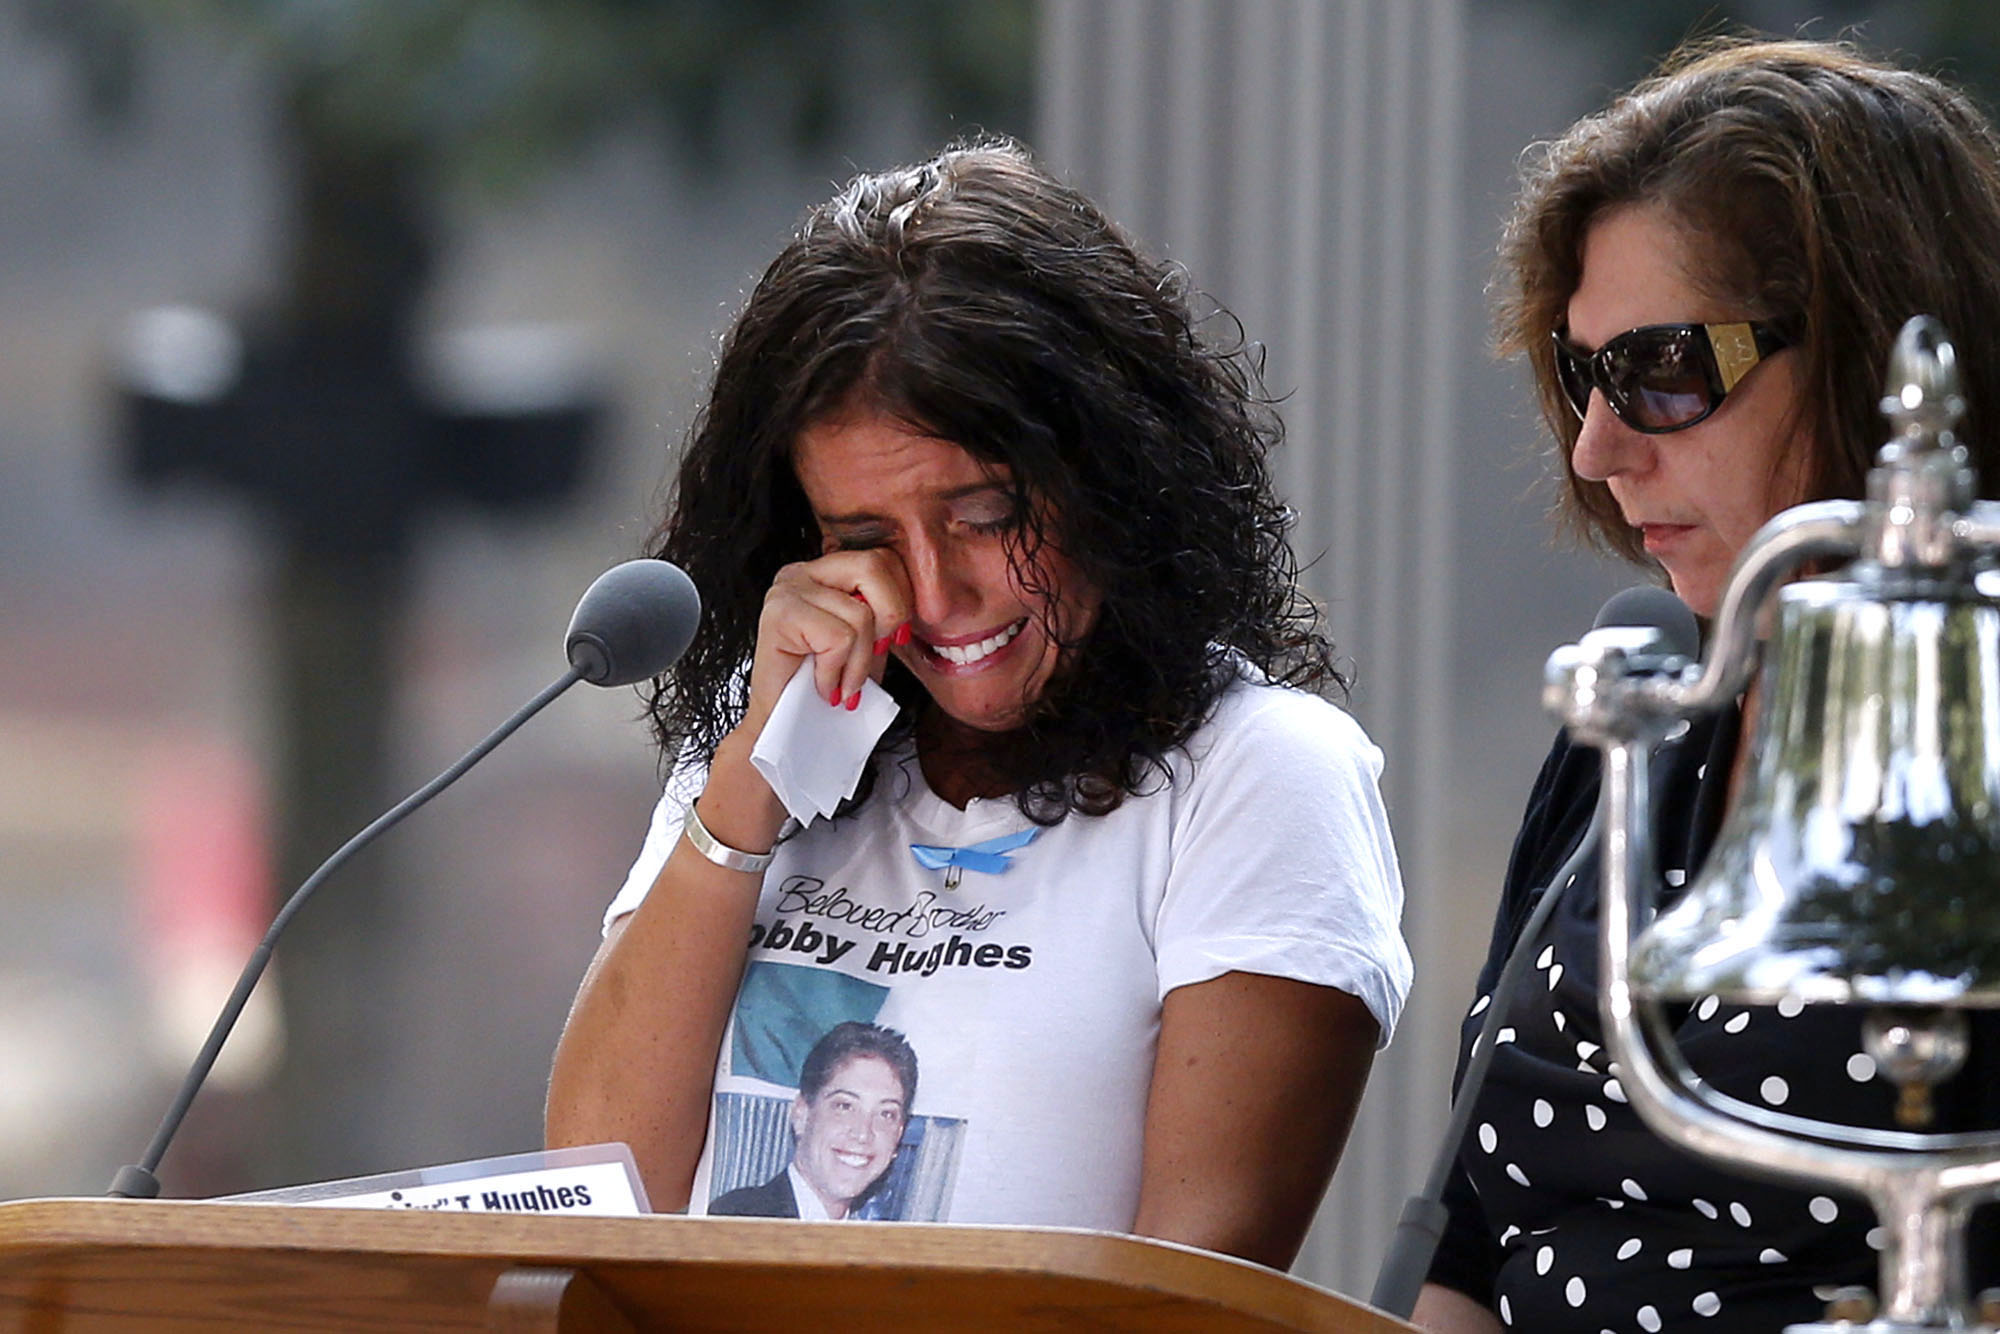 nation pays tribute to victims of 9/11 attacks